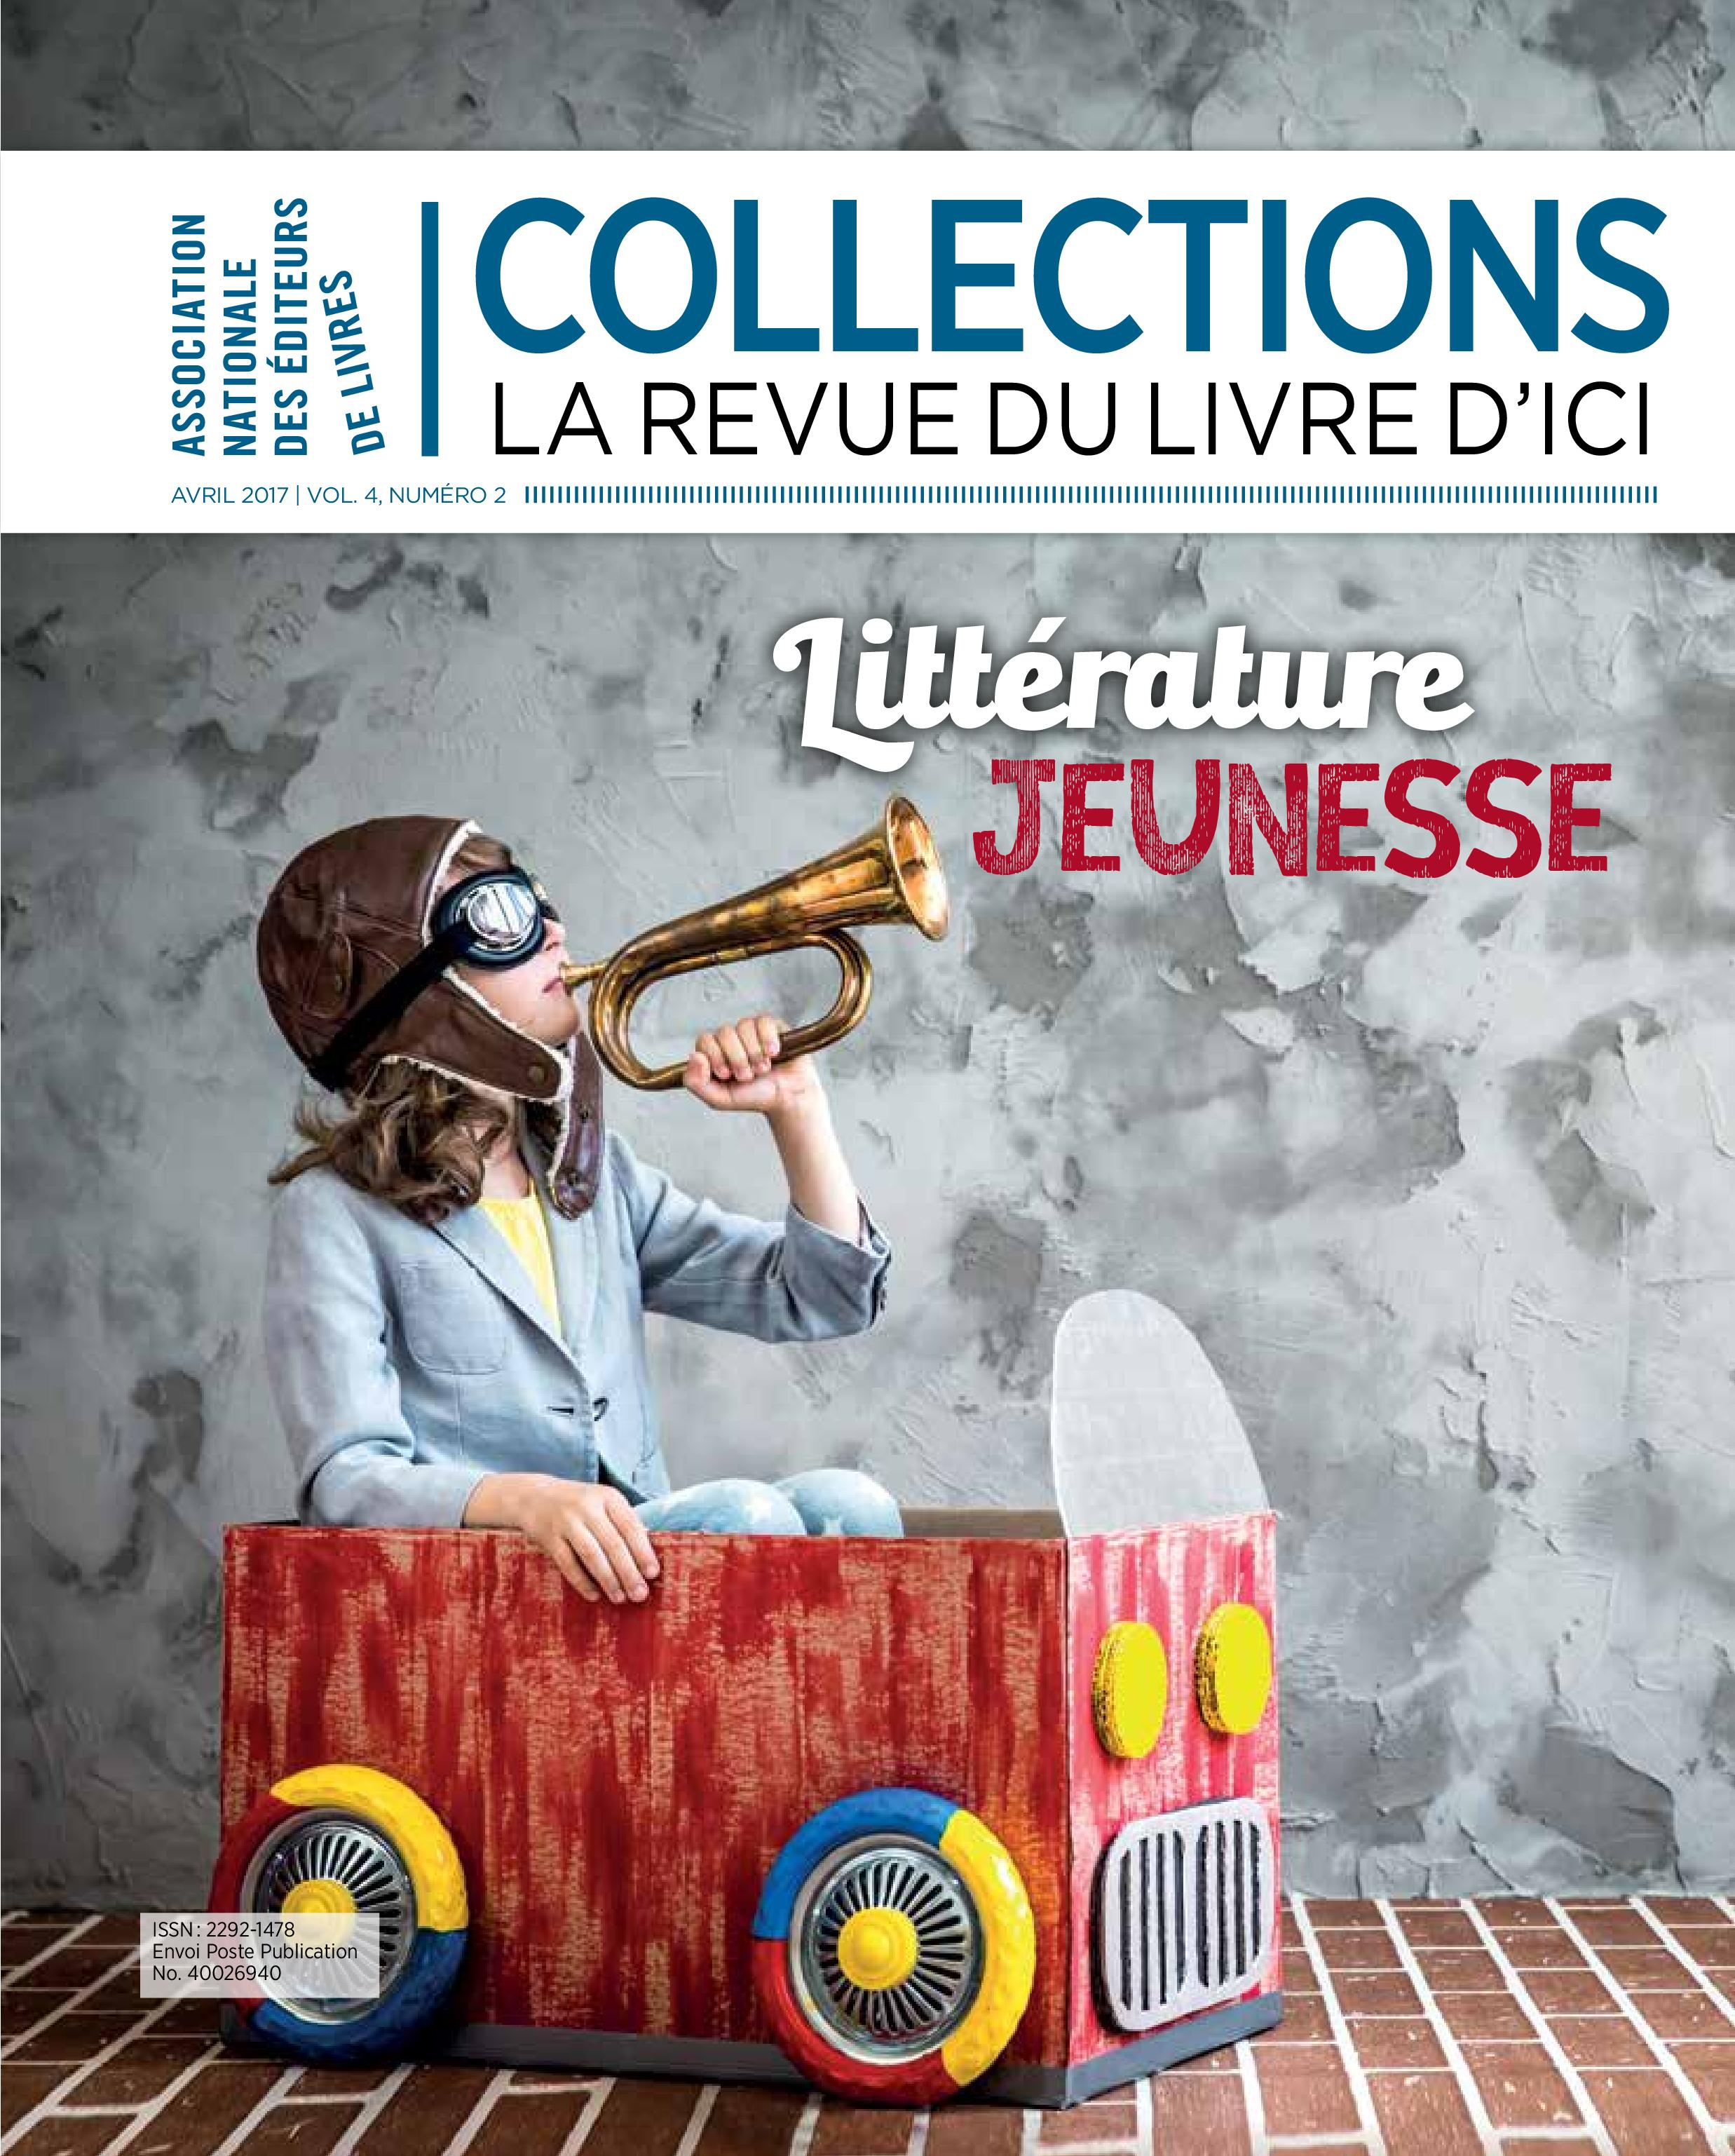 Collections Vol 4, No 2, Littérature jeunesse